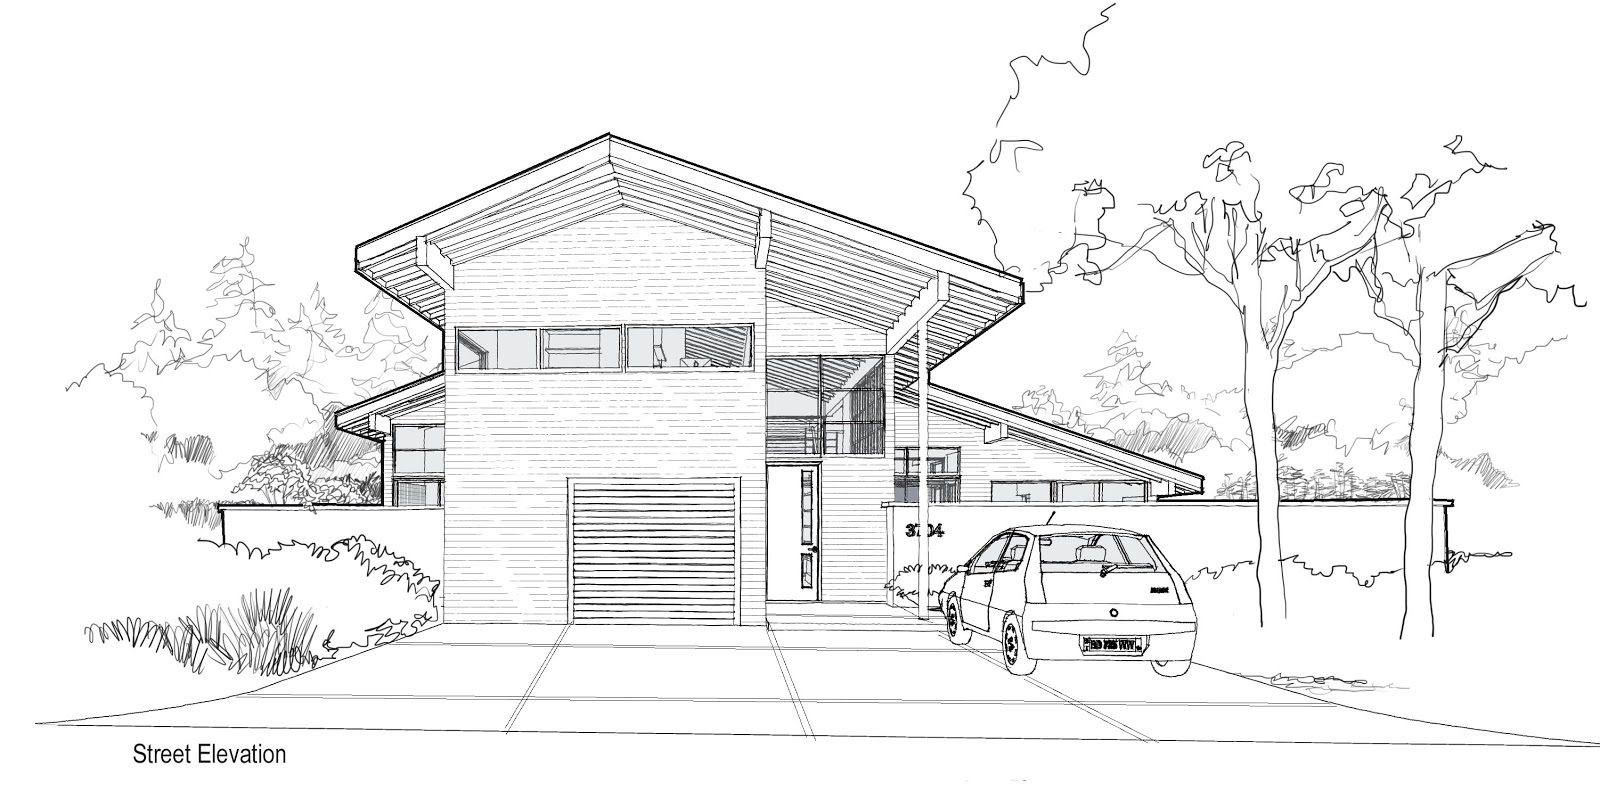 House Architecture Sketch modern house drawing